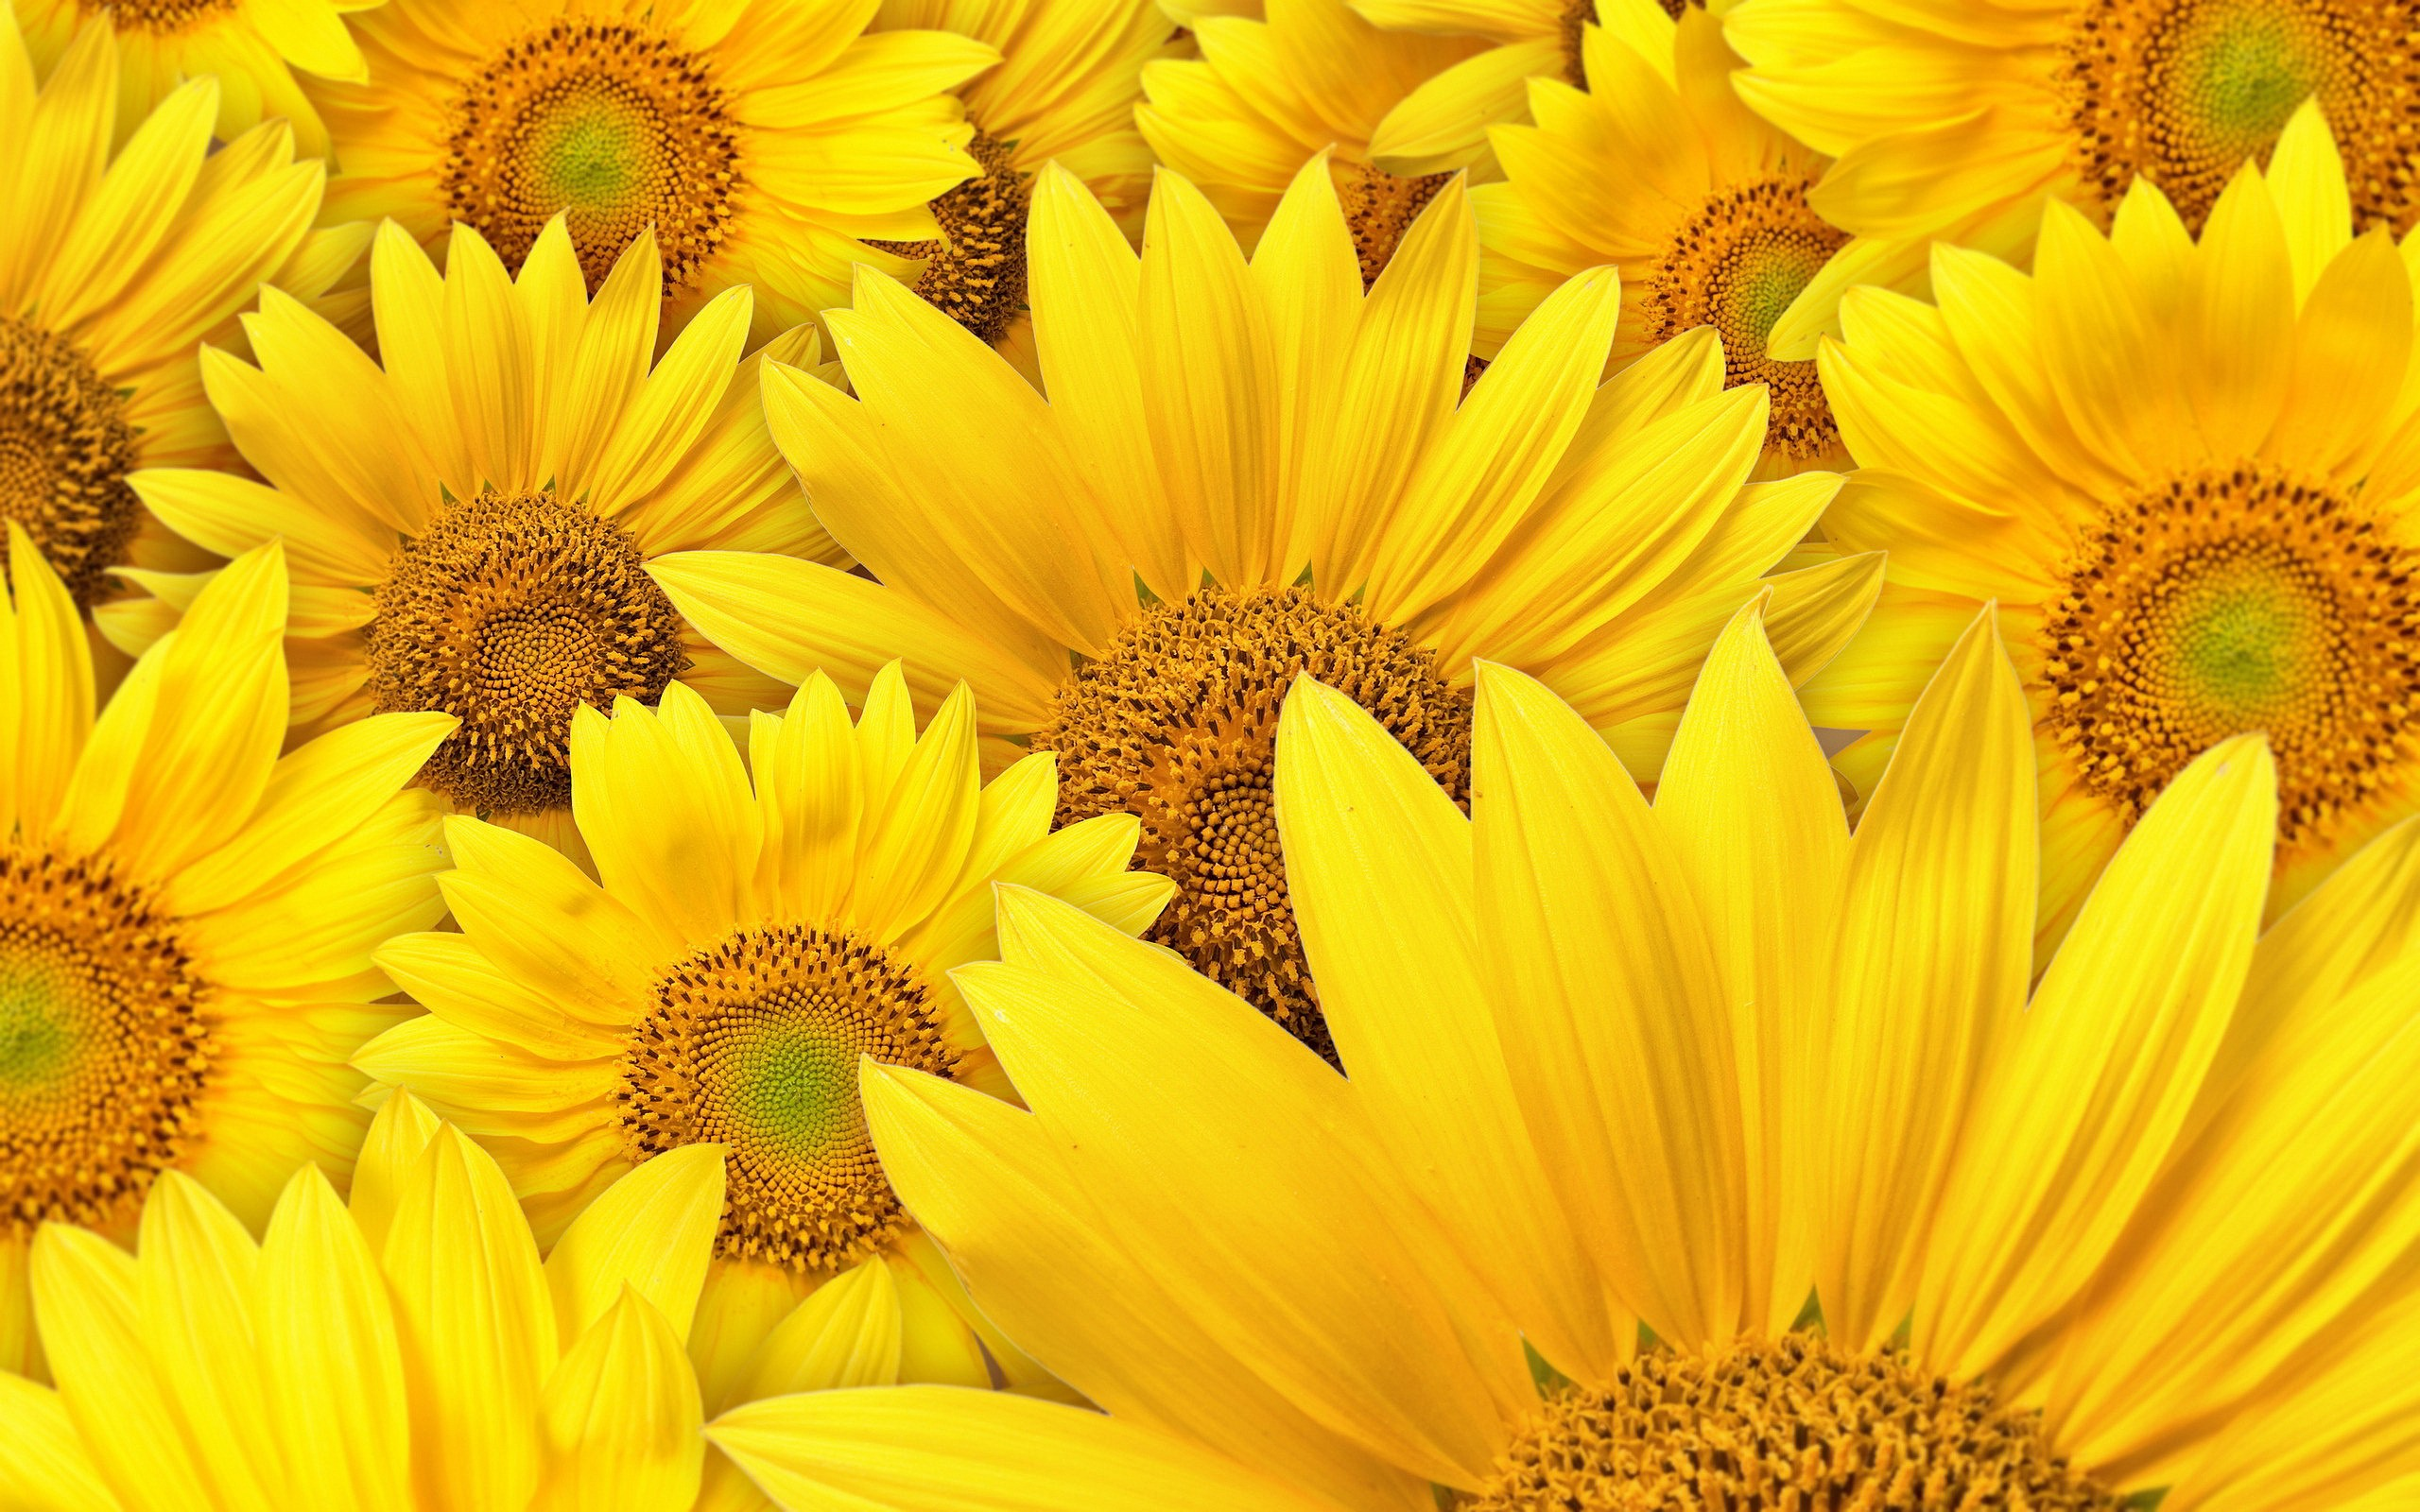 Amazing Wallpaper Macbook Sunflower - 354030-full-size-sunflower-background-2560x1600-for-full-hd  Perfect Image Reference_41774.jpg